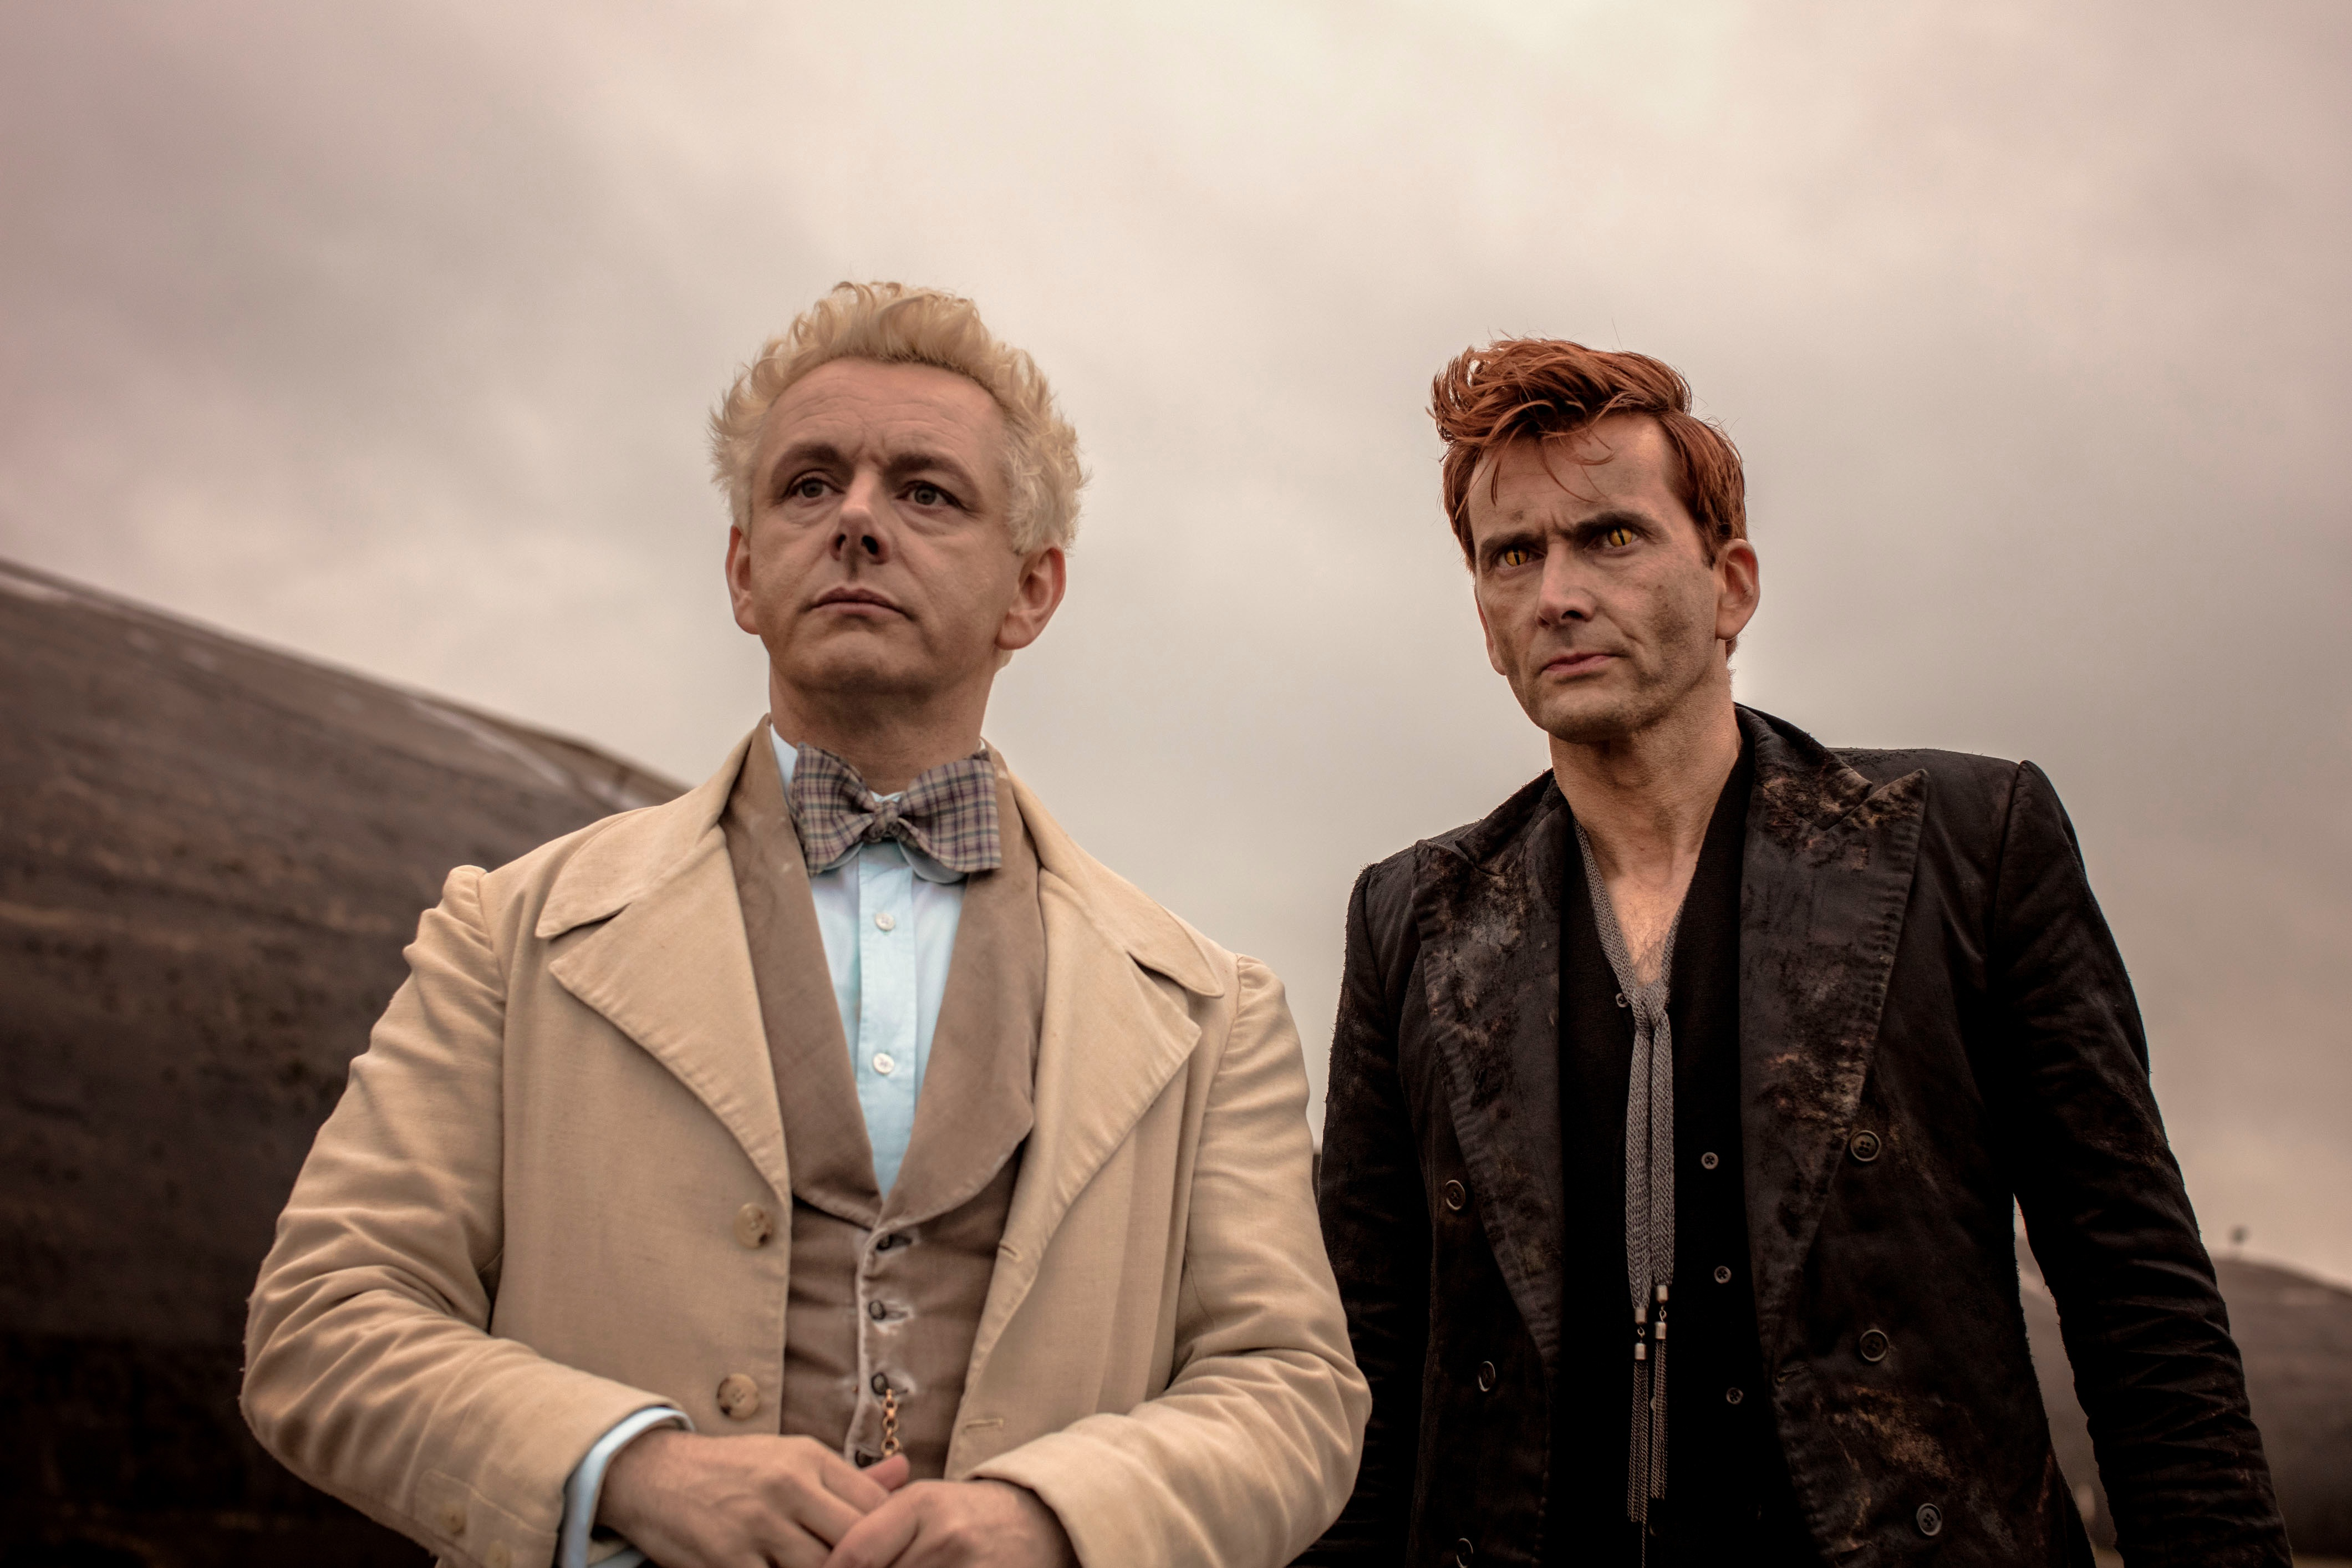 Amazon's 'Good Omens' 2 + More UK Productions are Greenlit and Soon Casting